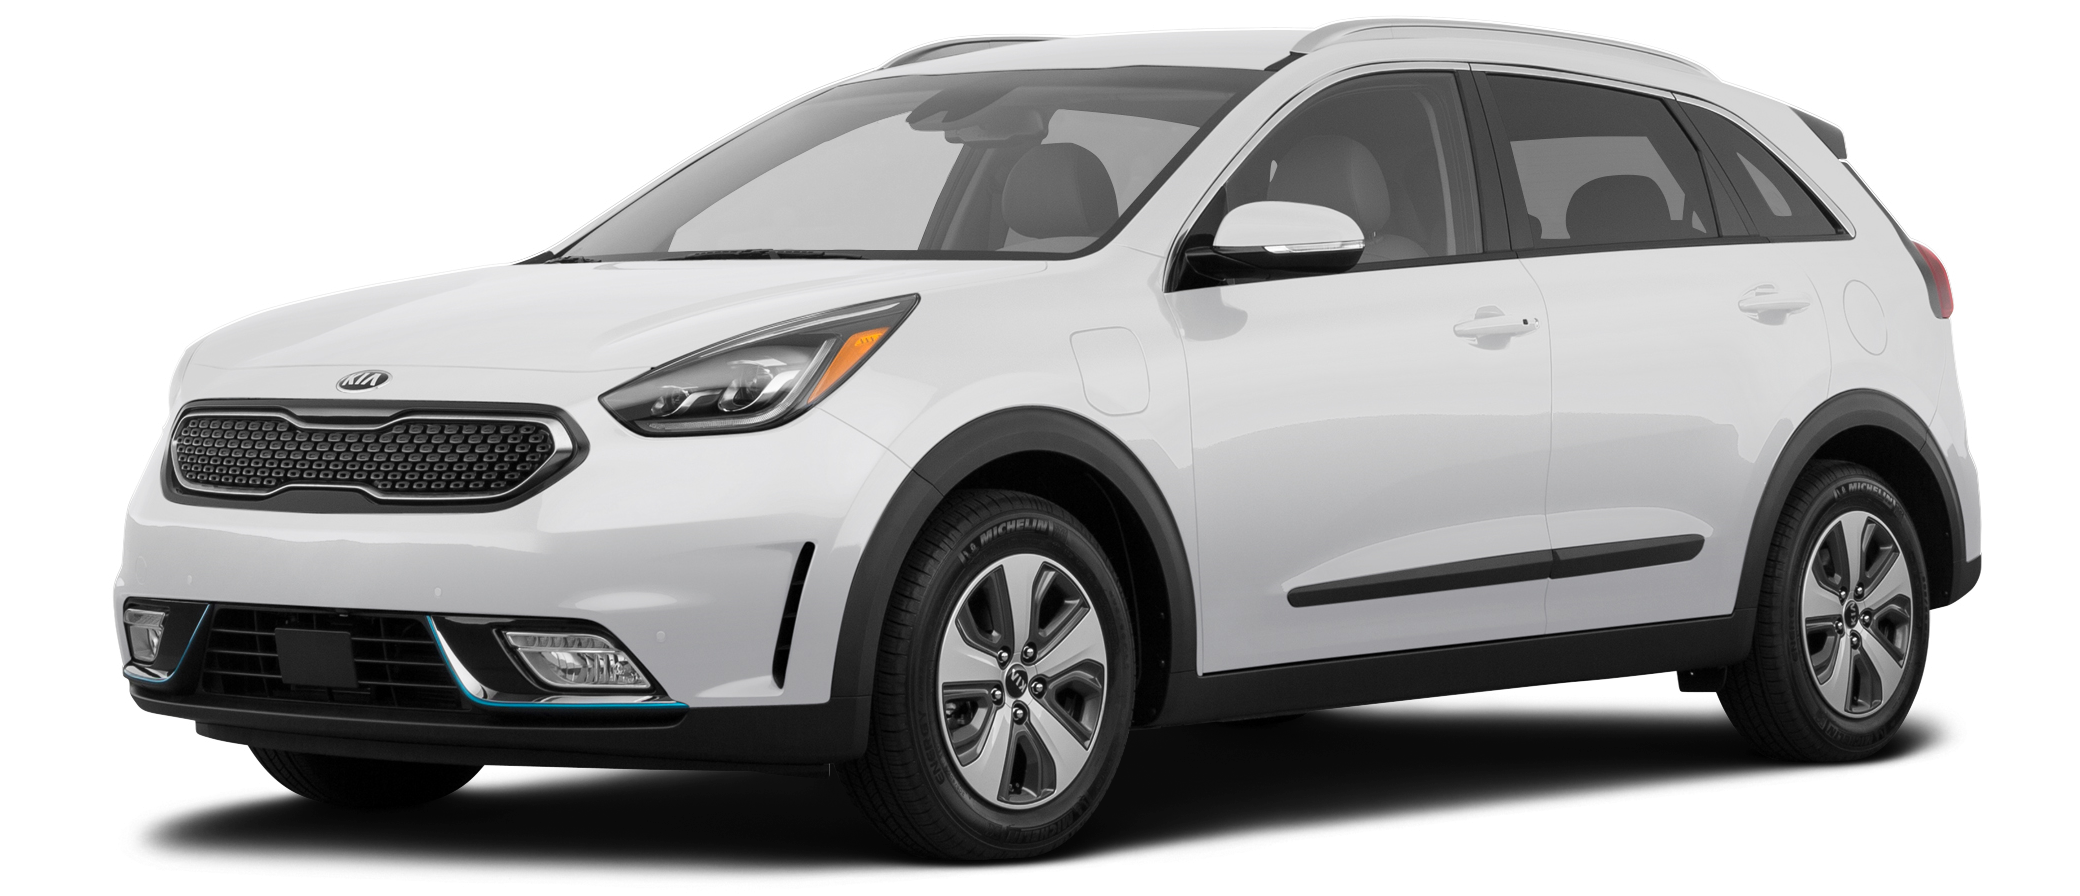 2019 kia niro plug in hybrid incentives specials offers in yonkers ny. Black Bedroom Furniture Sets. Home Design Ideas